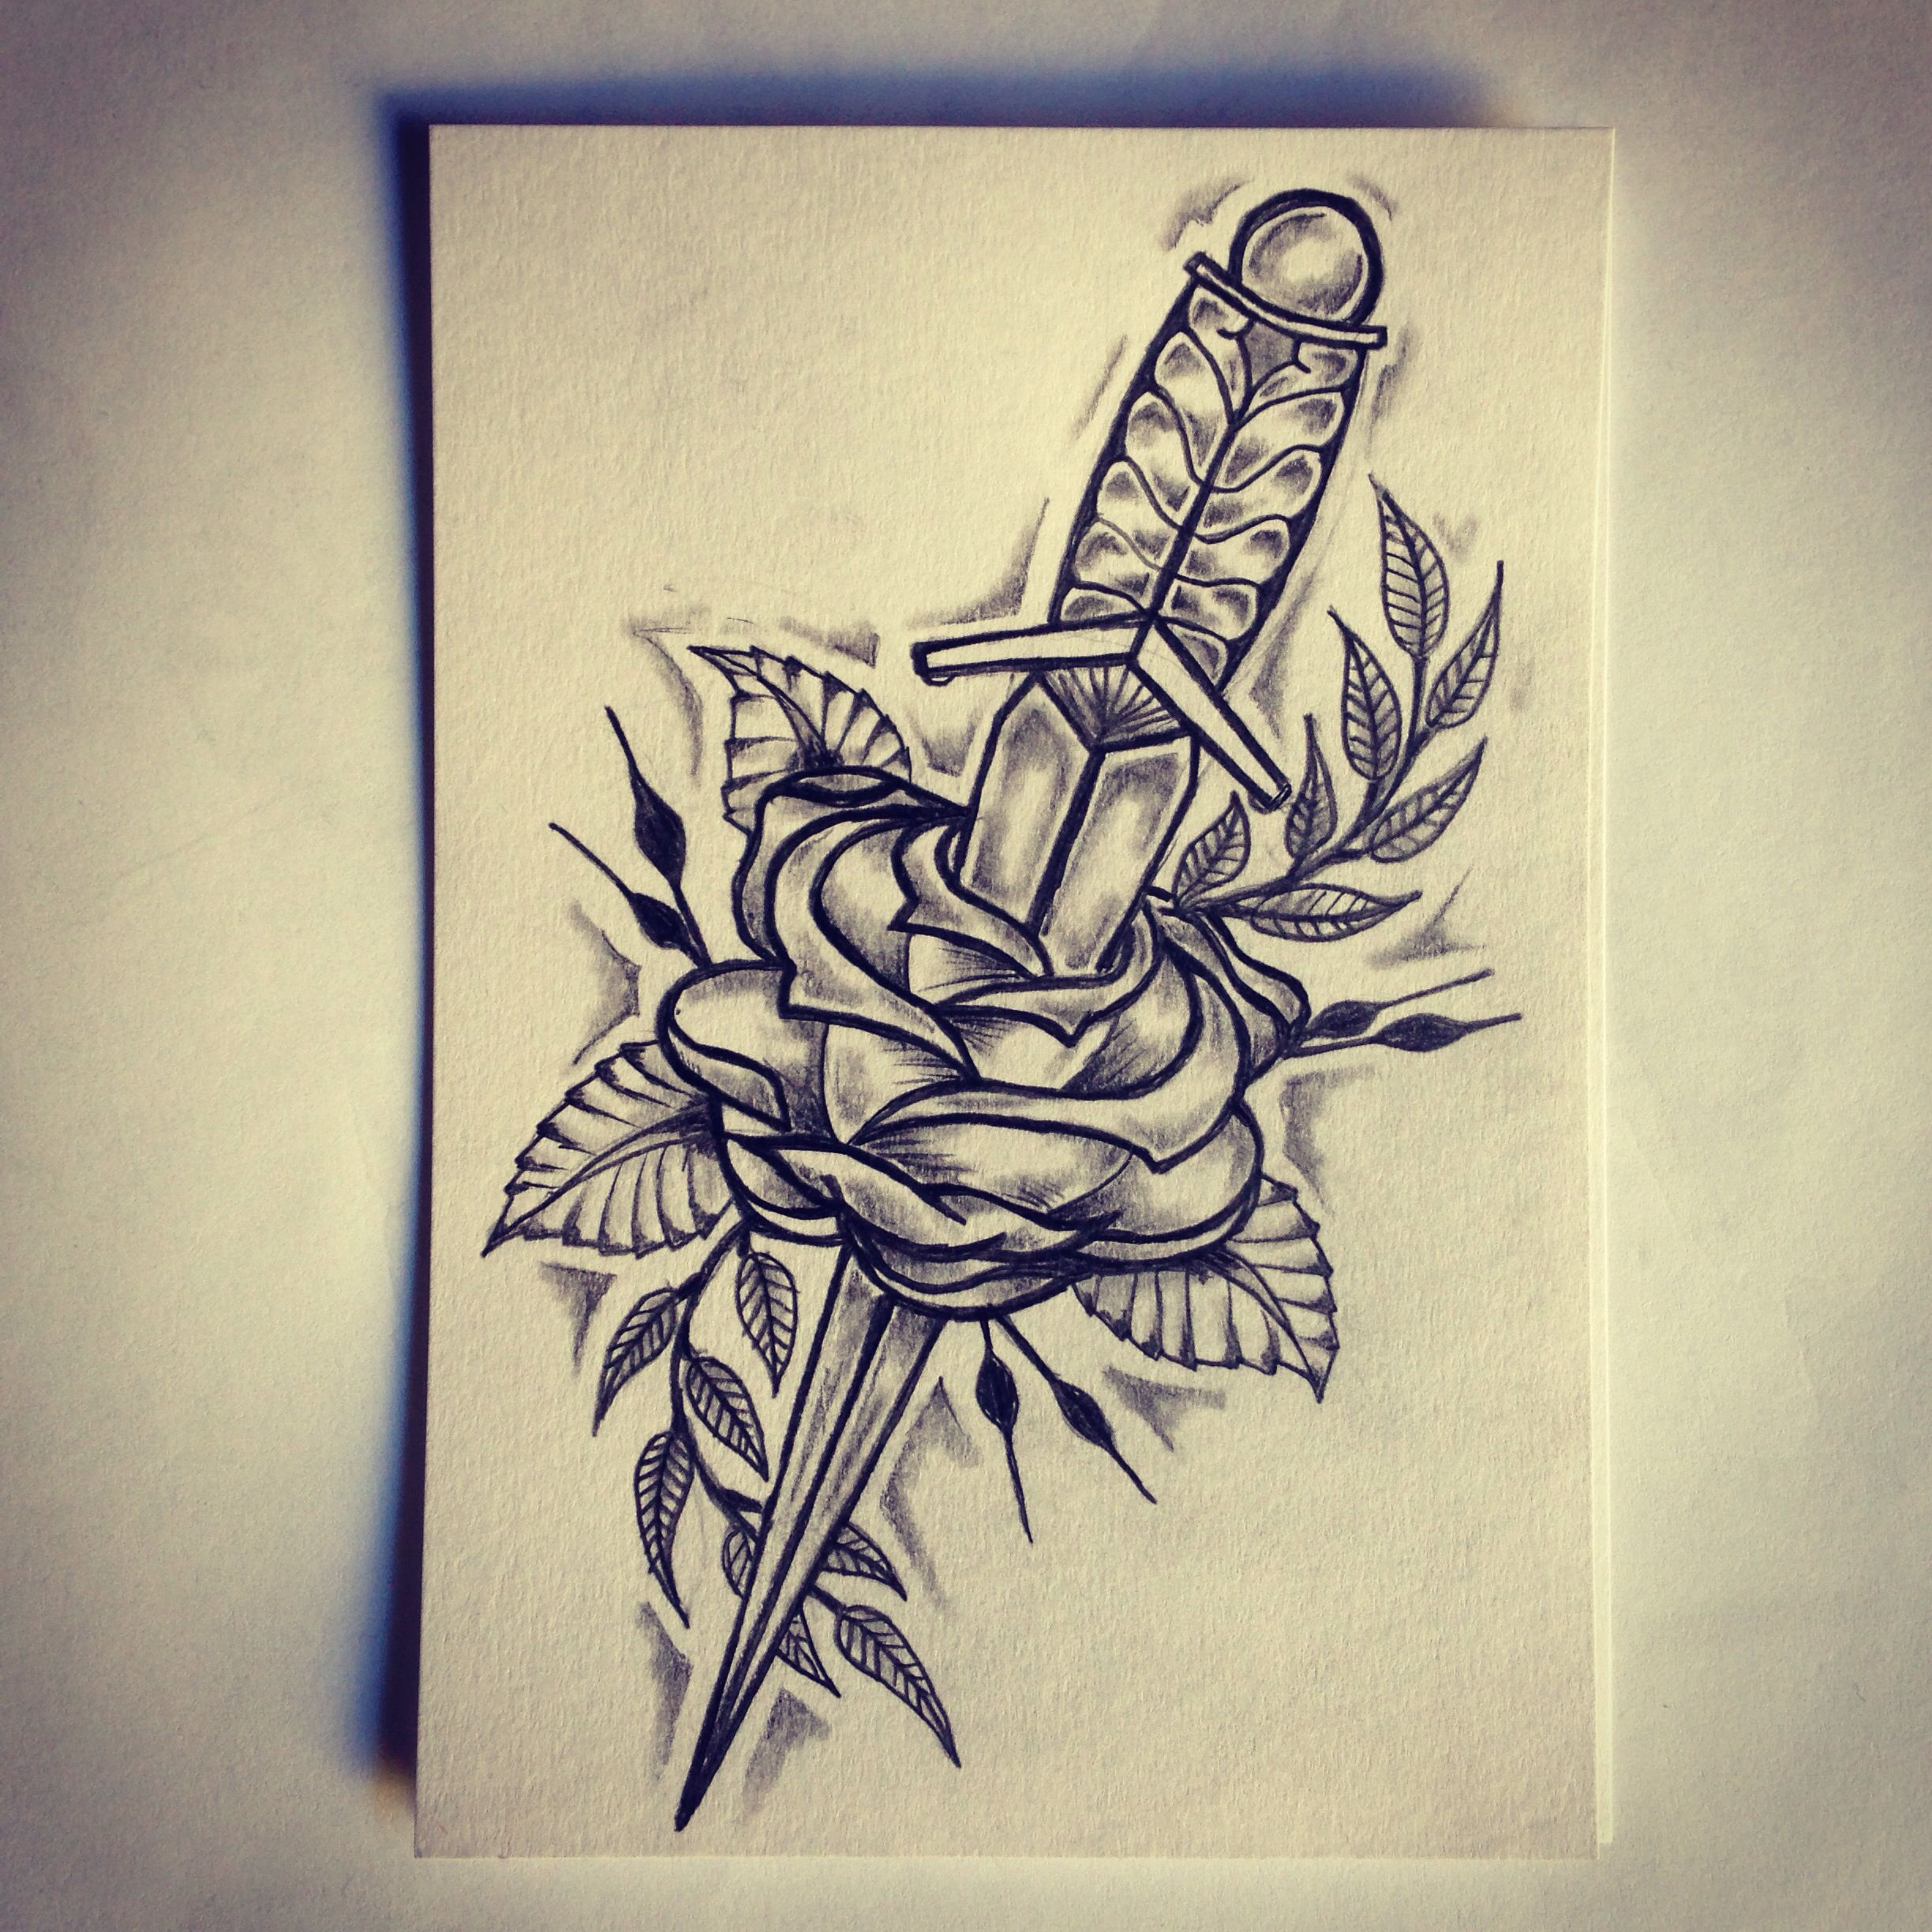 Dagger rose tattoo sketch drawing tattoo ideas by for Drawing design ideas